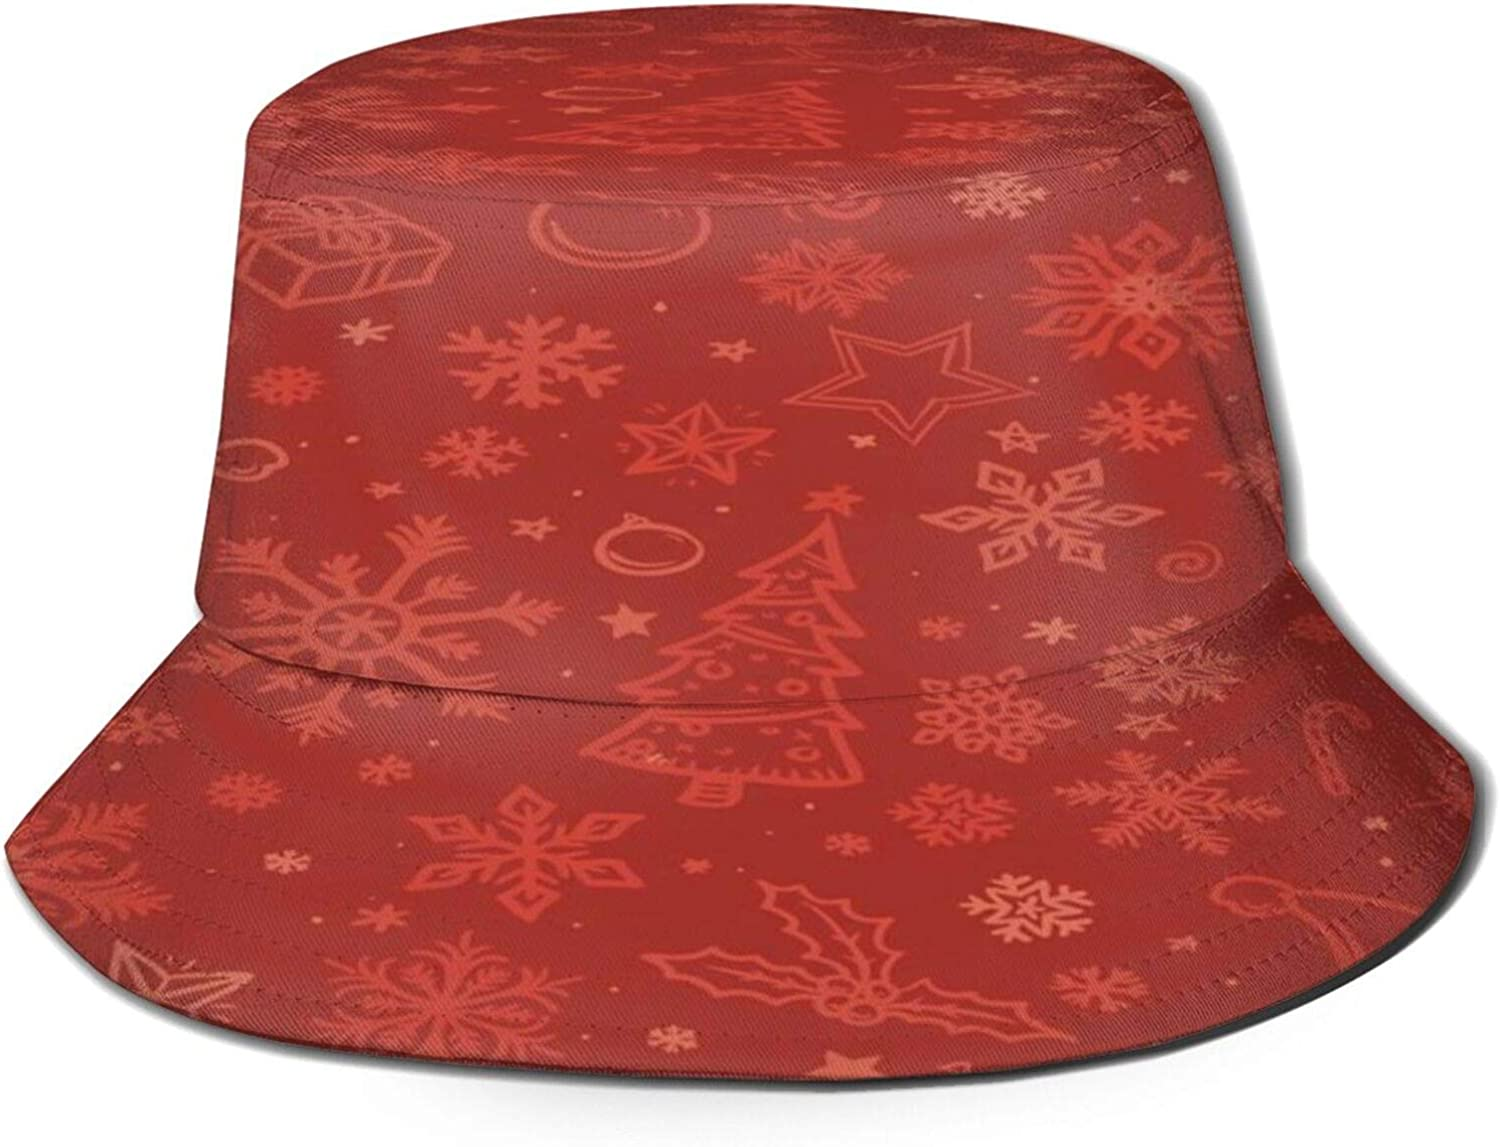 Red Sketched Christmas All items free shipping Bucket Hat Over item handling ☆ Packable Summer Sun Unisex